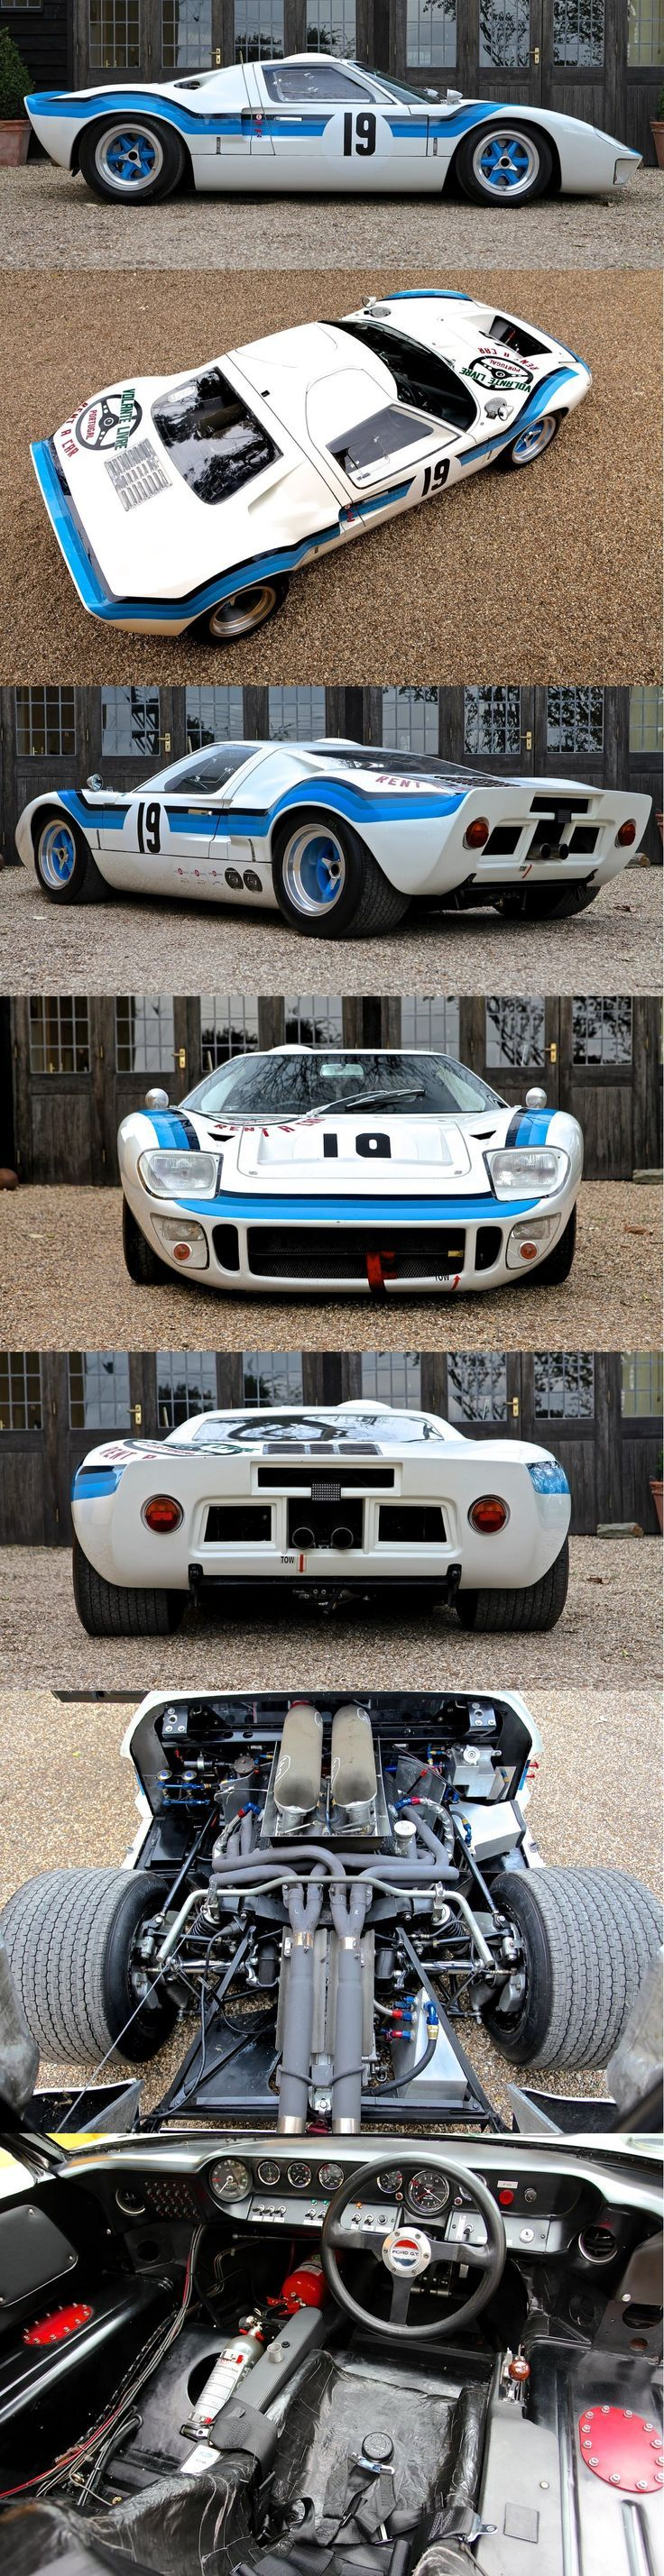 The 1969 Ford GT40 Mk 1 you see here was one of the first generation of cars sold to private teams and individuals to compete in both local and international events. The Ford GT40 is an British designed and built endurance racer that was developed with the sole purpose of taking the fight to Ferrari.